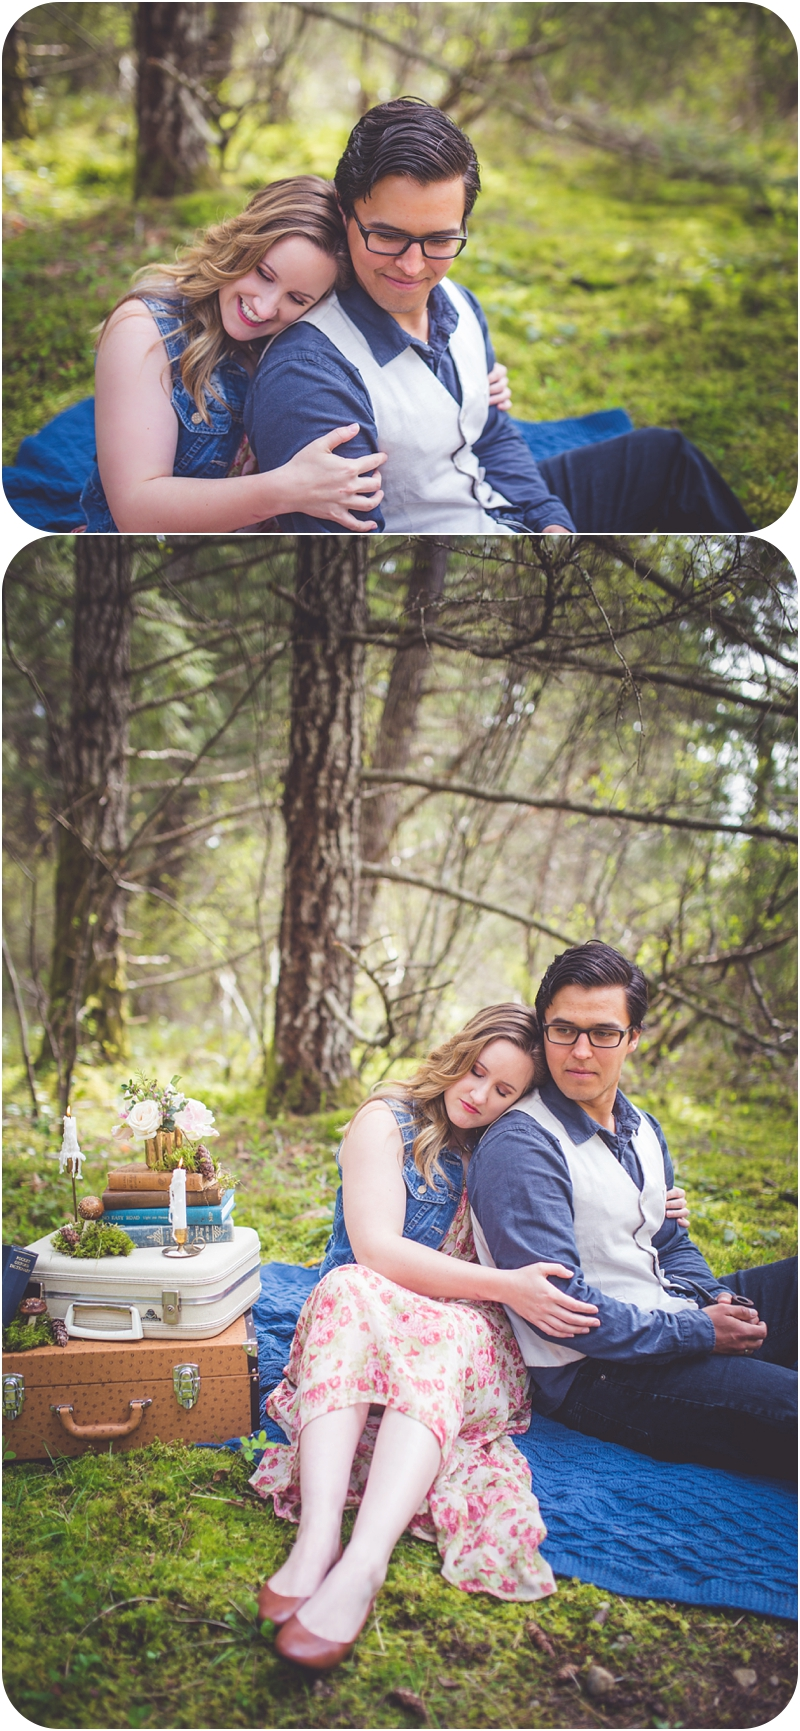 romantic forest picnic for two, qualicum beach bc portrait photographer